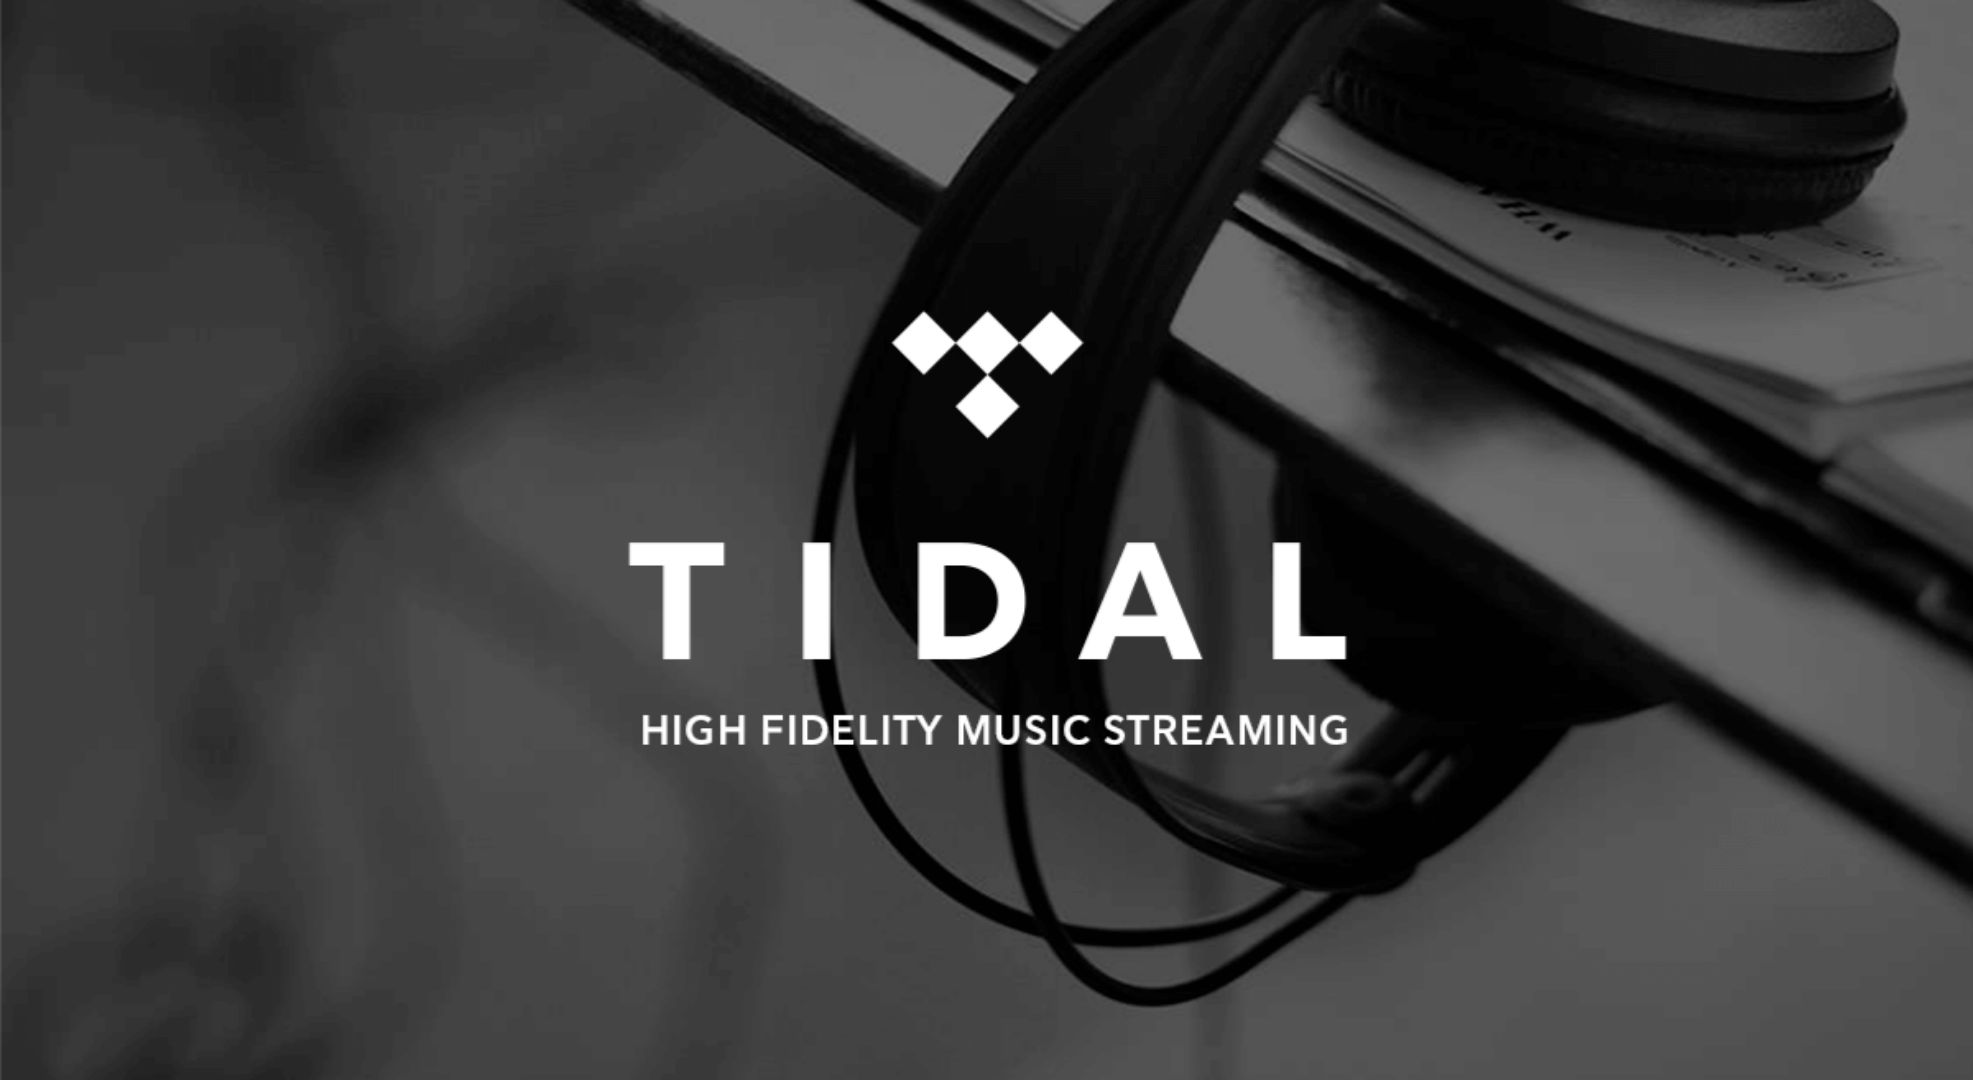 Tidal's '17' Honors Five-Year Anniversary